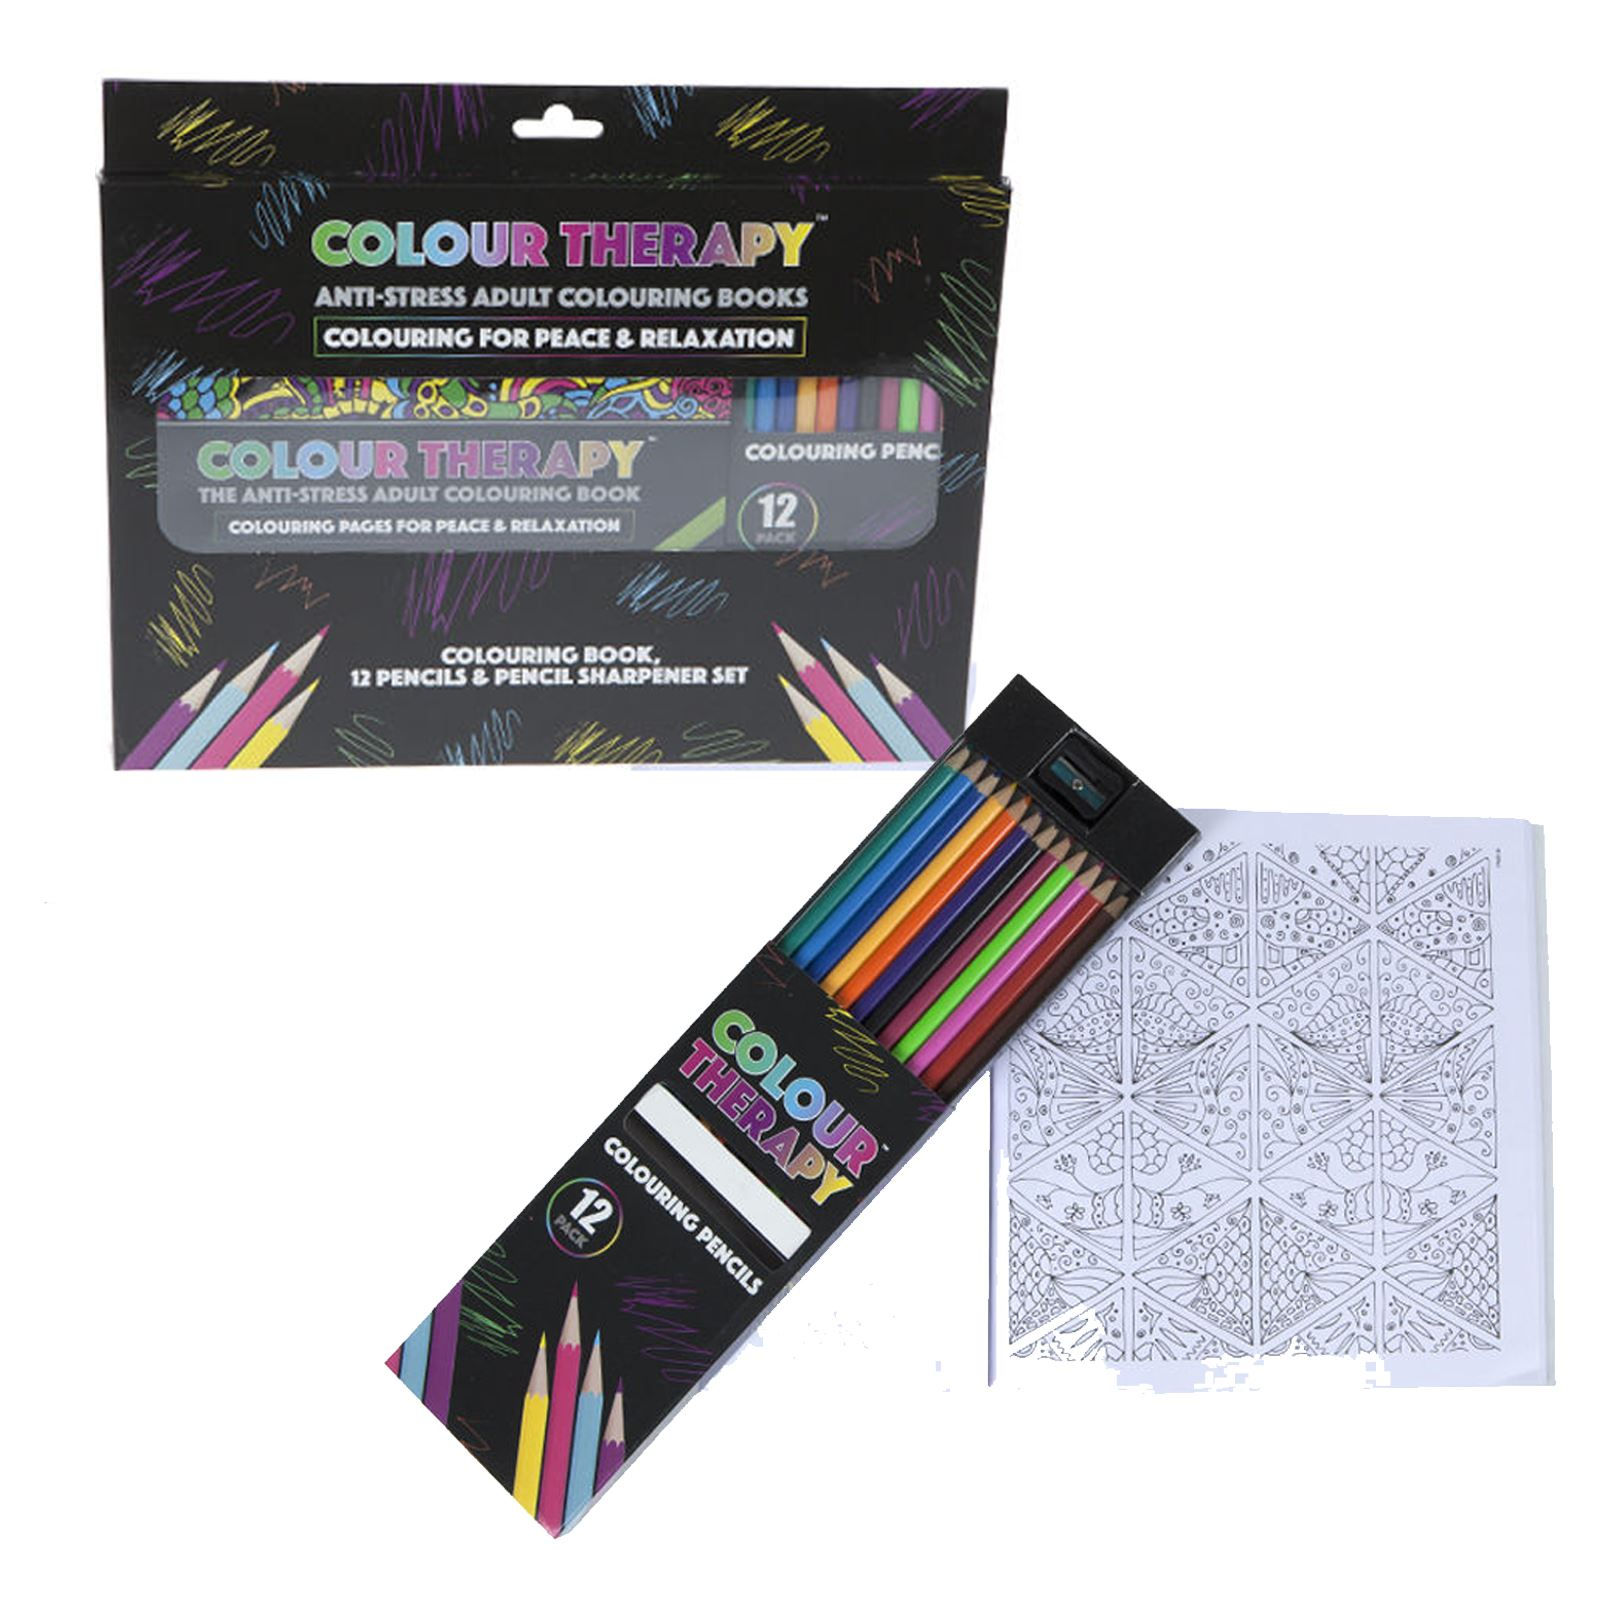 Colour therapy for relaxation - New Colour Therapy Adult Colouring Books Anti Stress